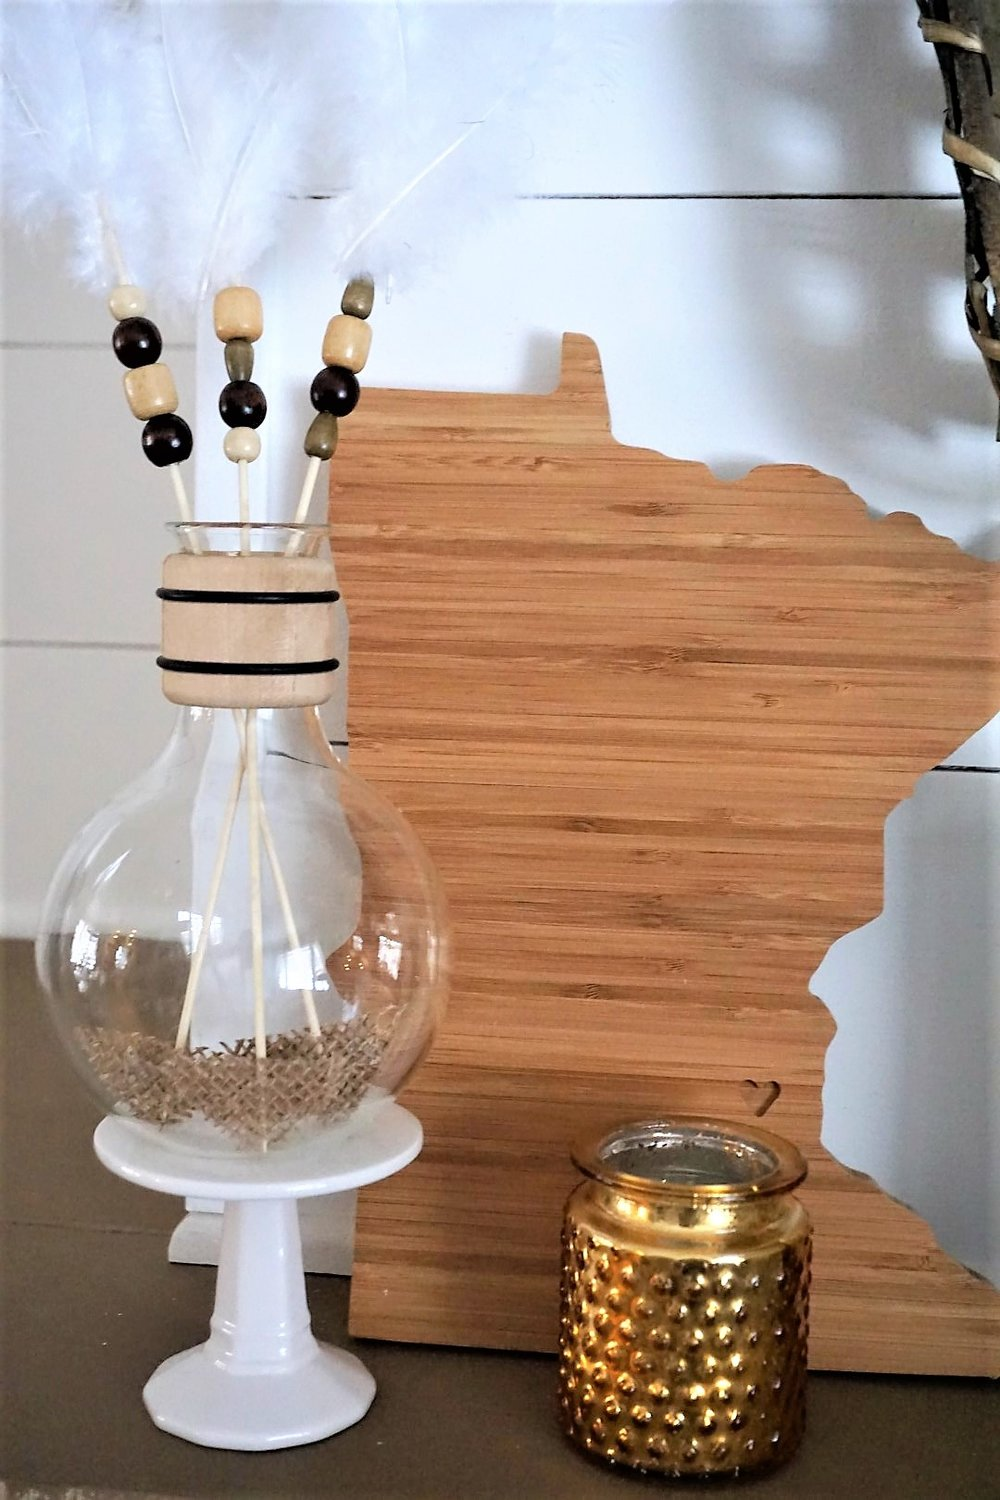 Wooden Minnesota with DIY boho cupid's arrows.